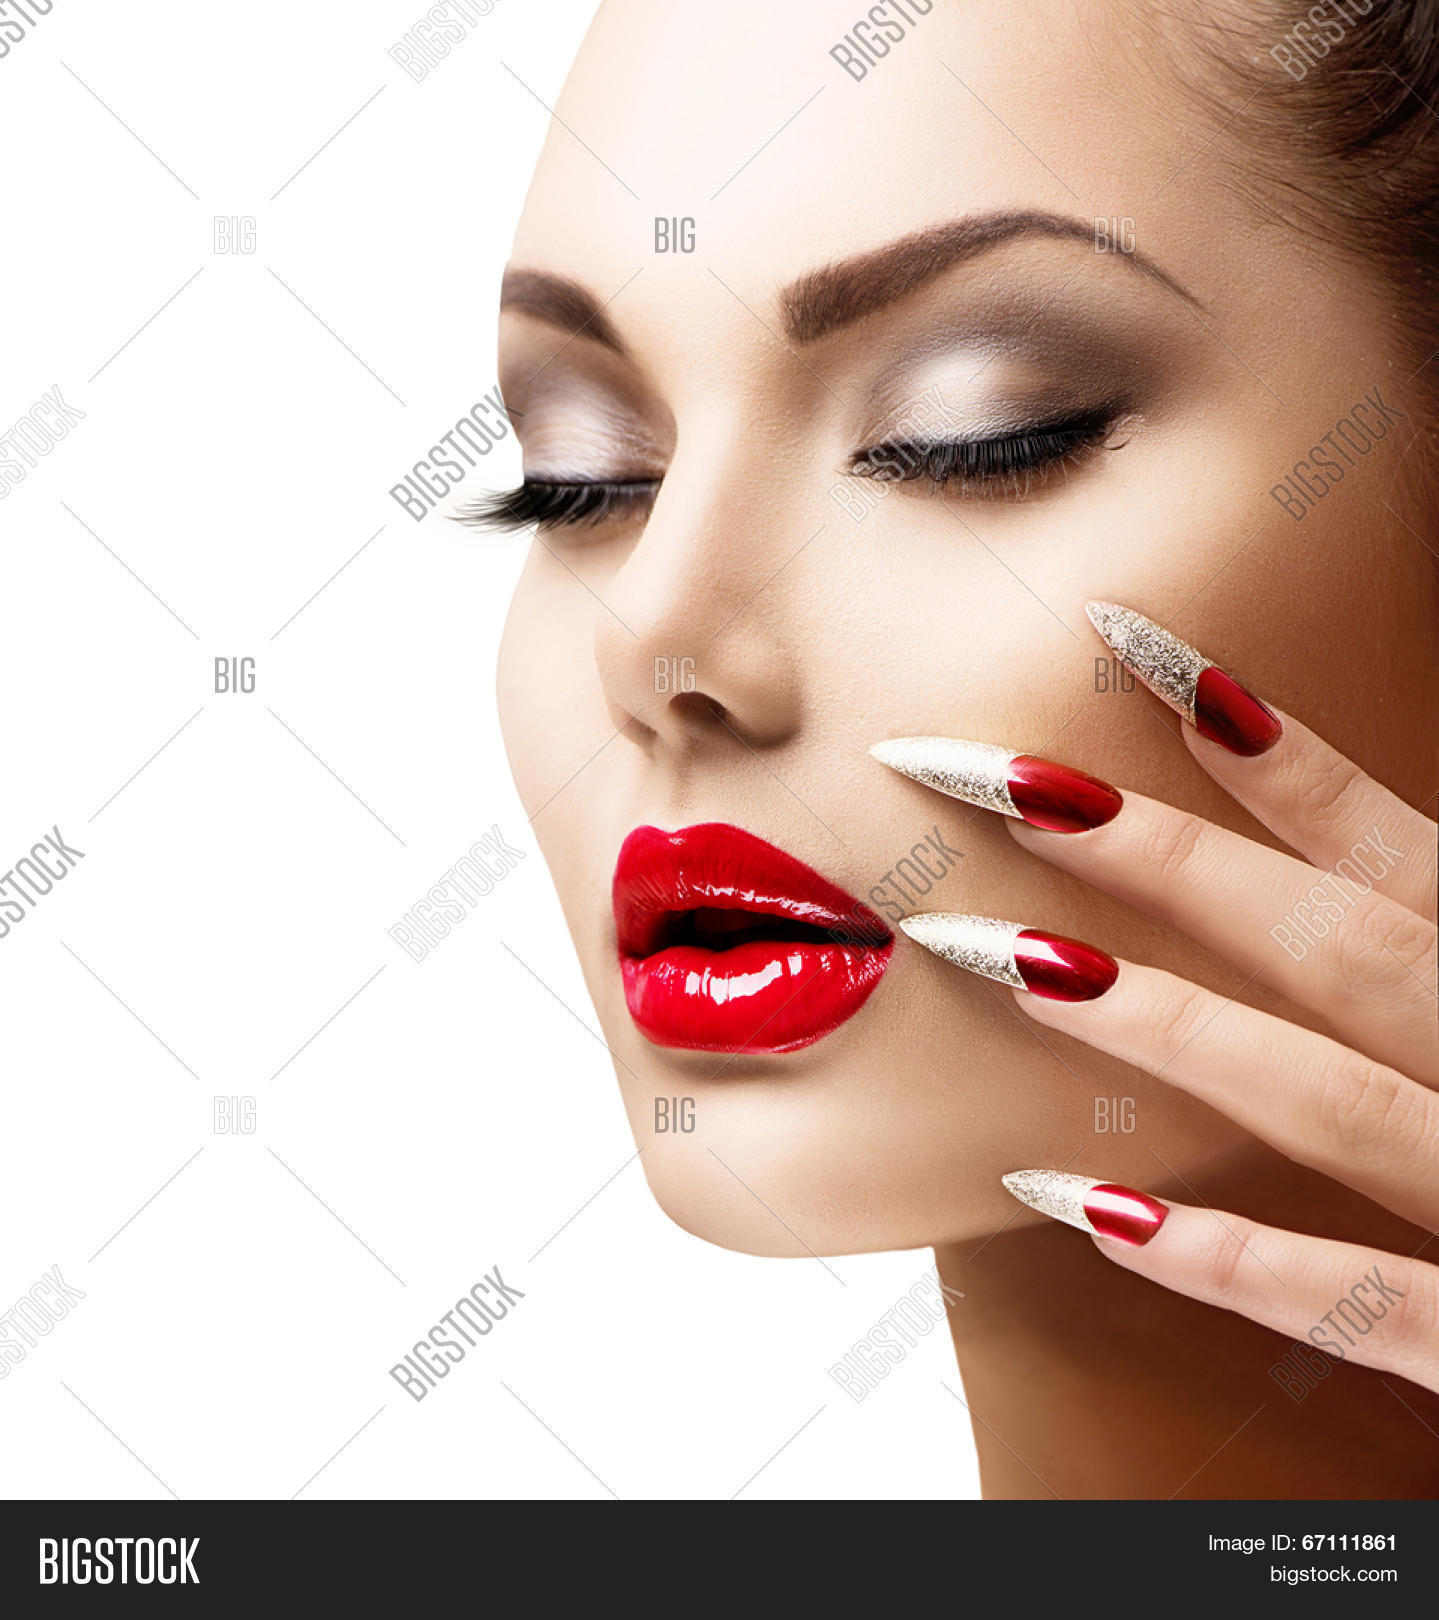 The Nail Art And Beauty Diaries: Fashion Beauty Model Image & Photo (Free Trial)